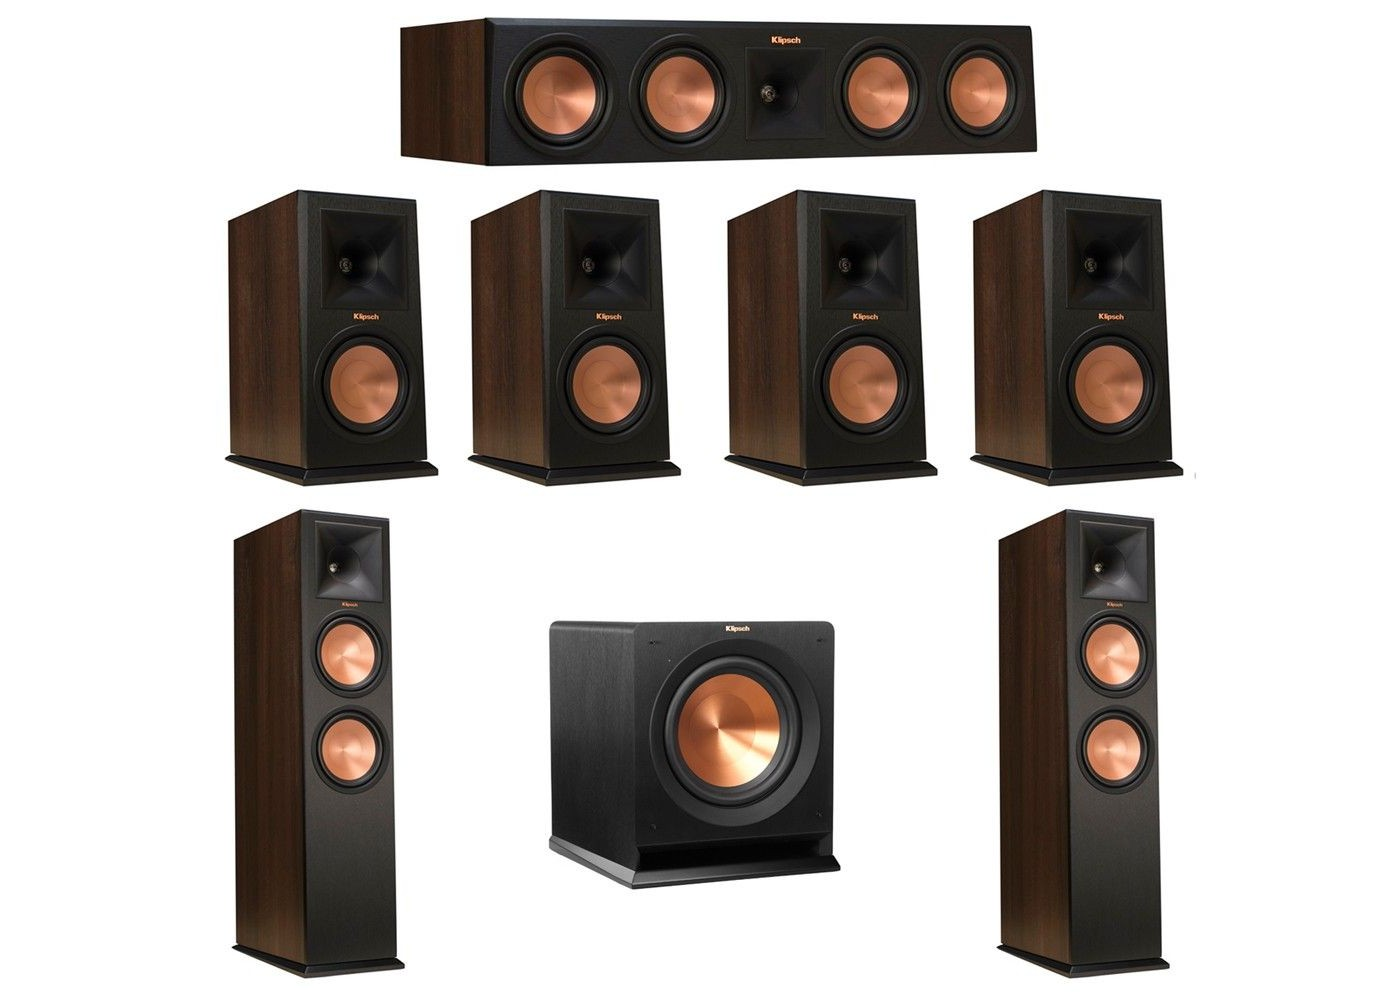 7.1 walnut system with 2 rp-280f tower speakers, 1 rp-450c center